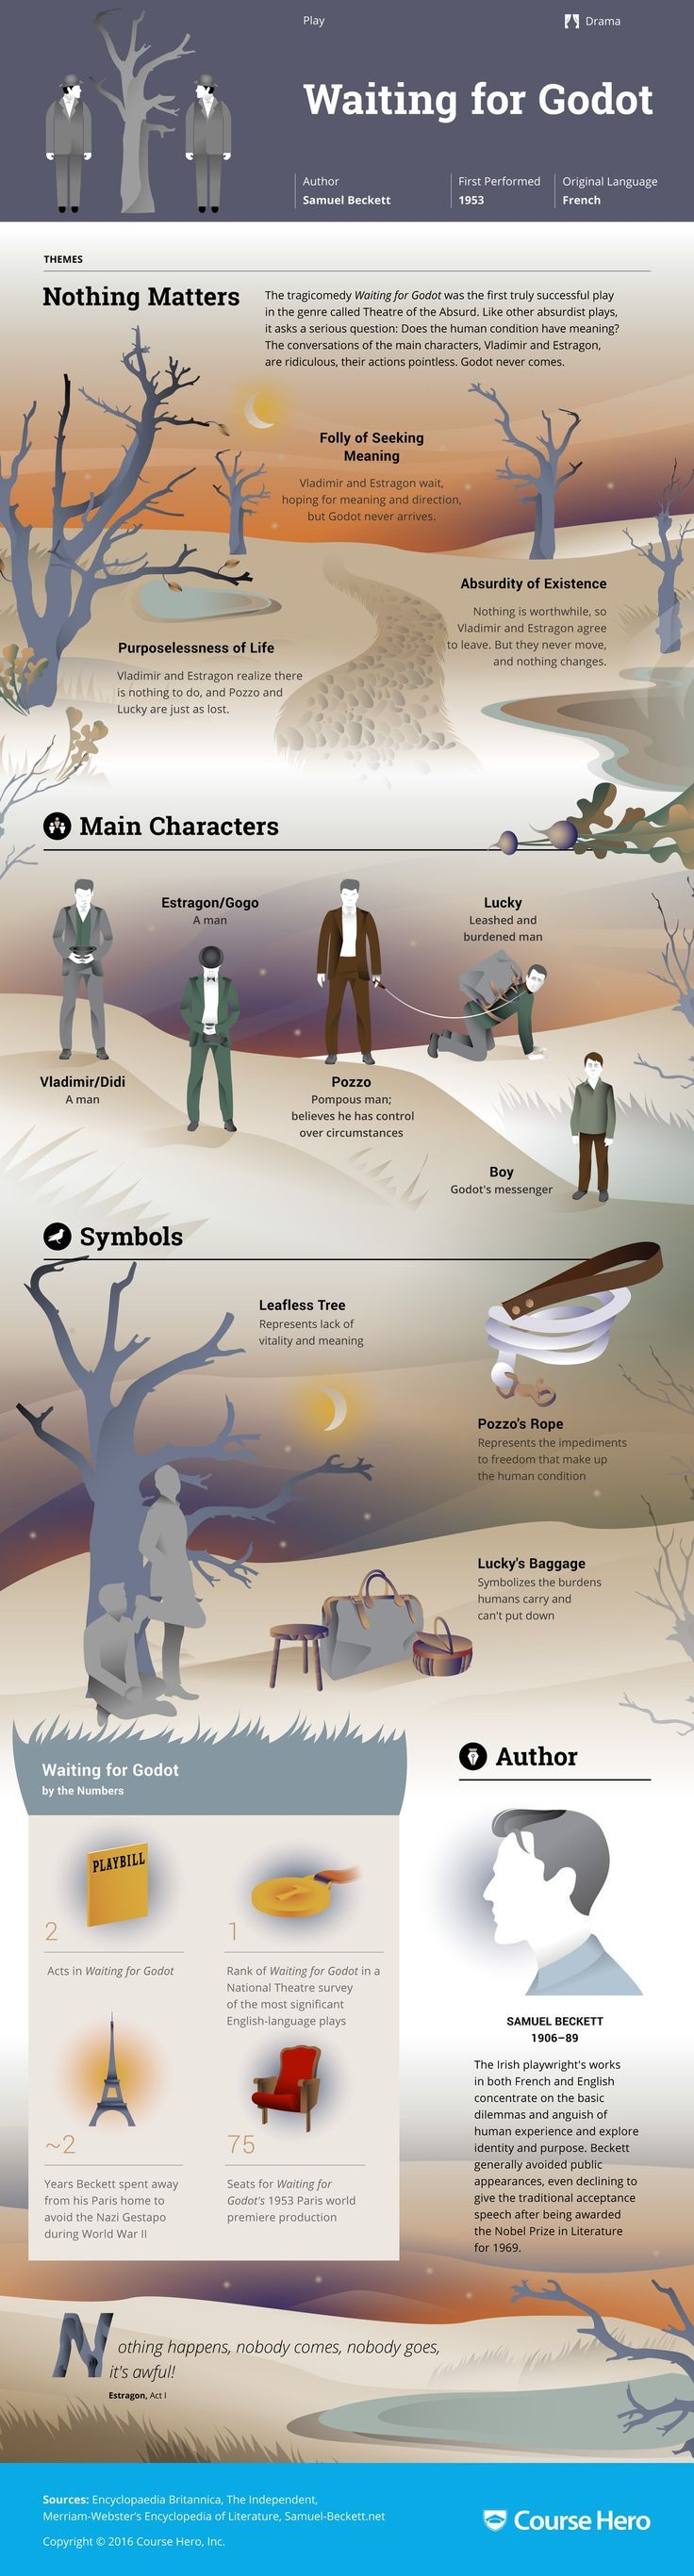 Waiting for Godot Infographic | Course Hero